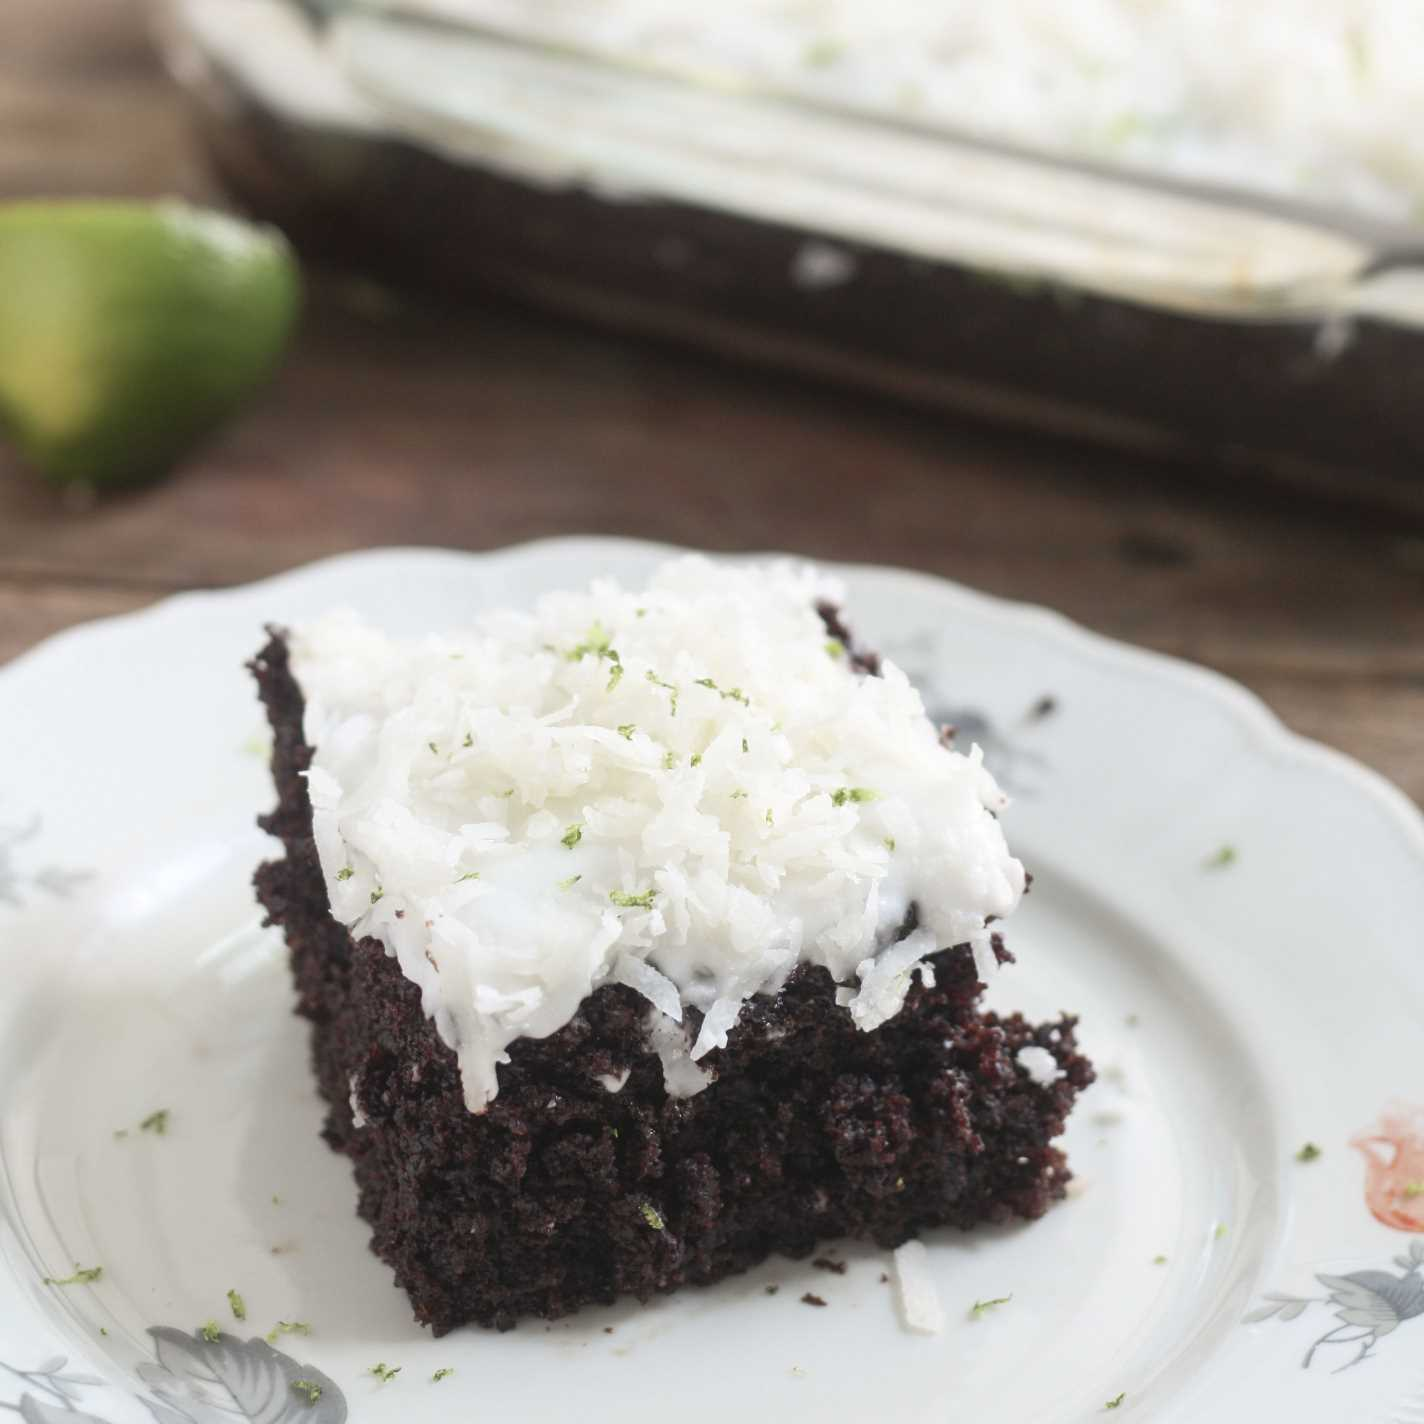 Perfectly Chocolate Chocolate Cake - Very black chocolate cake with white icing topped with shreded coconut and garnished with lime zest